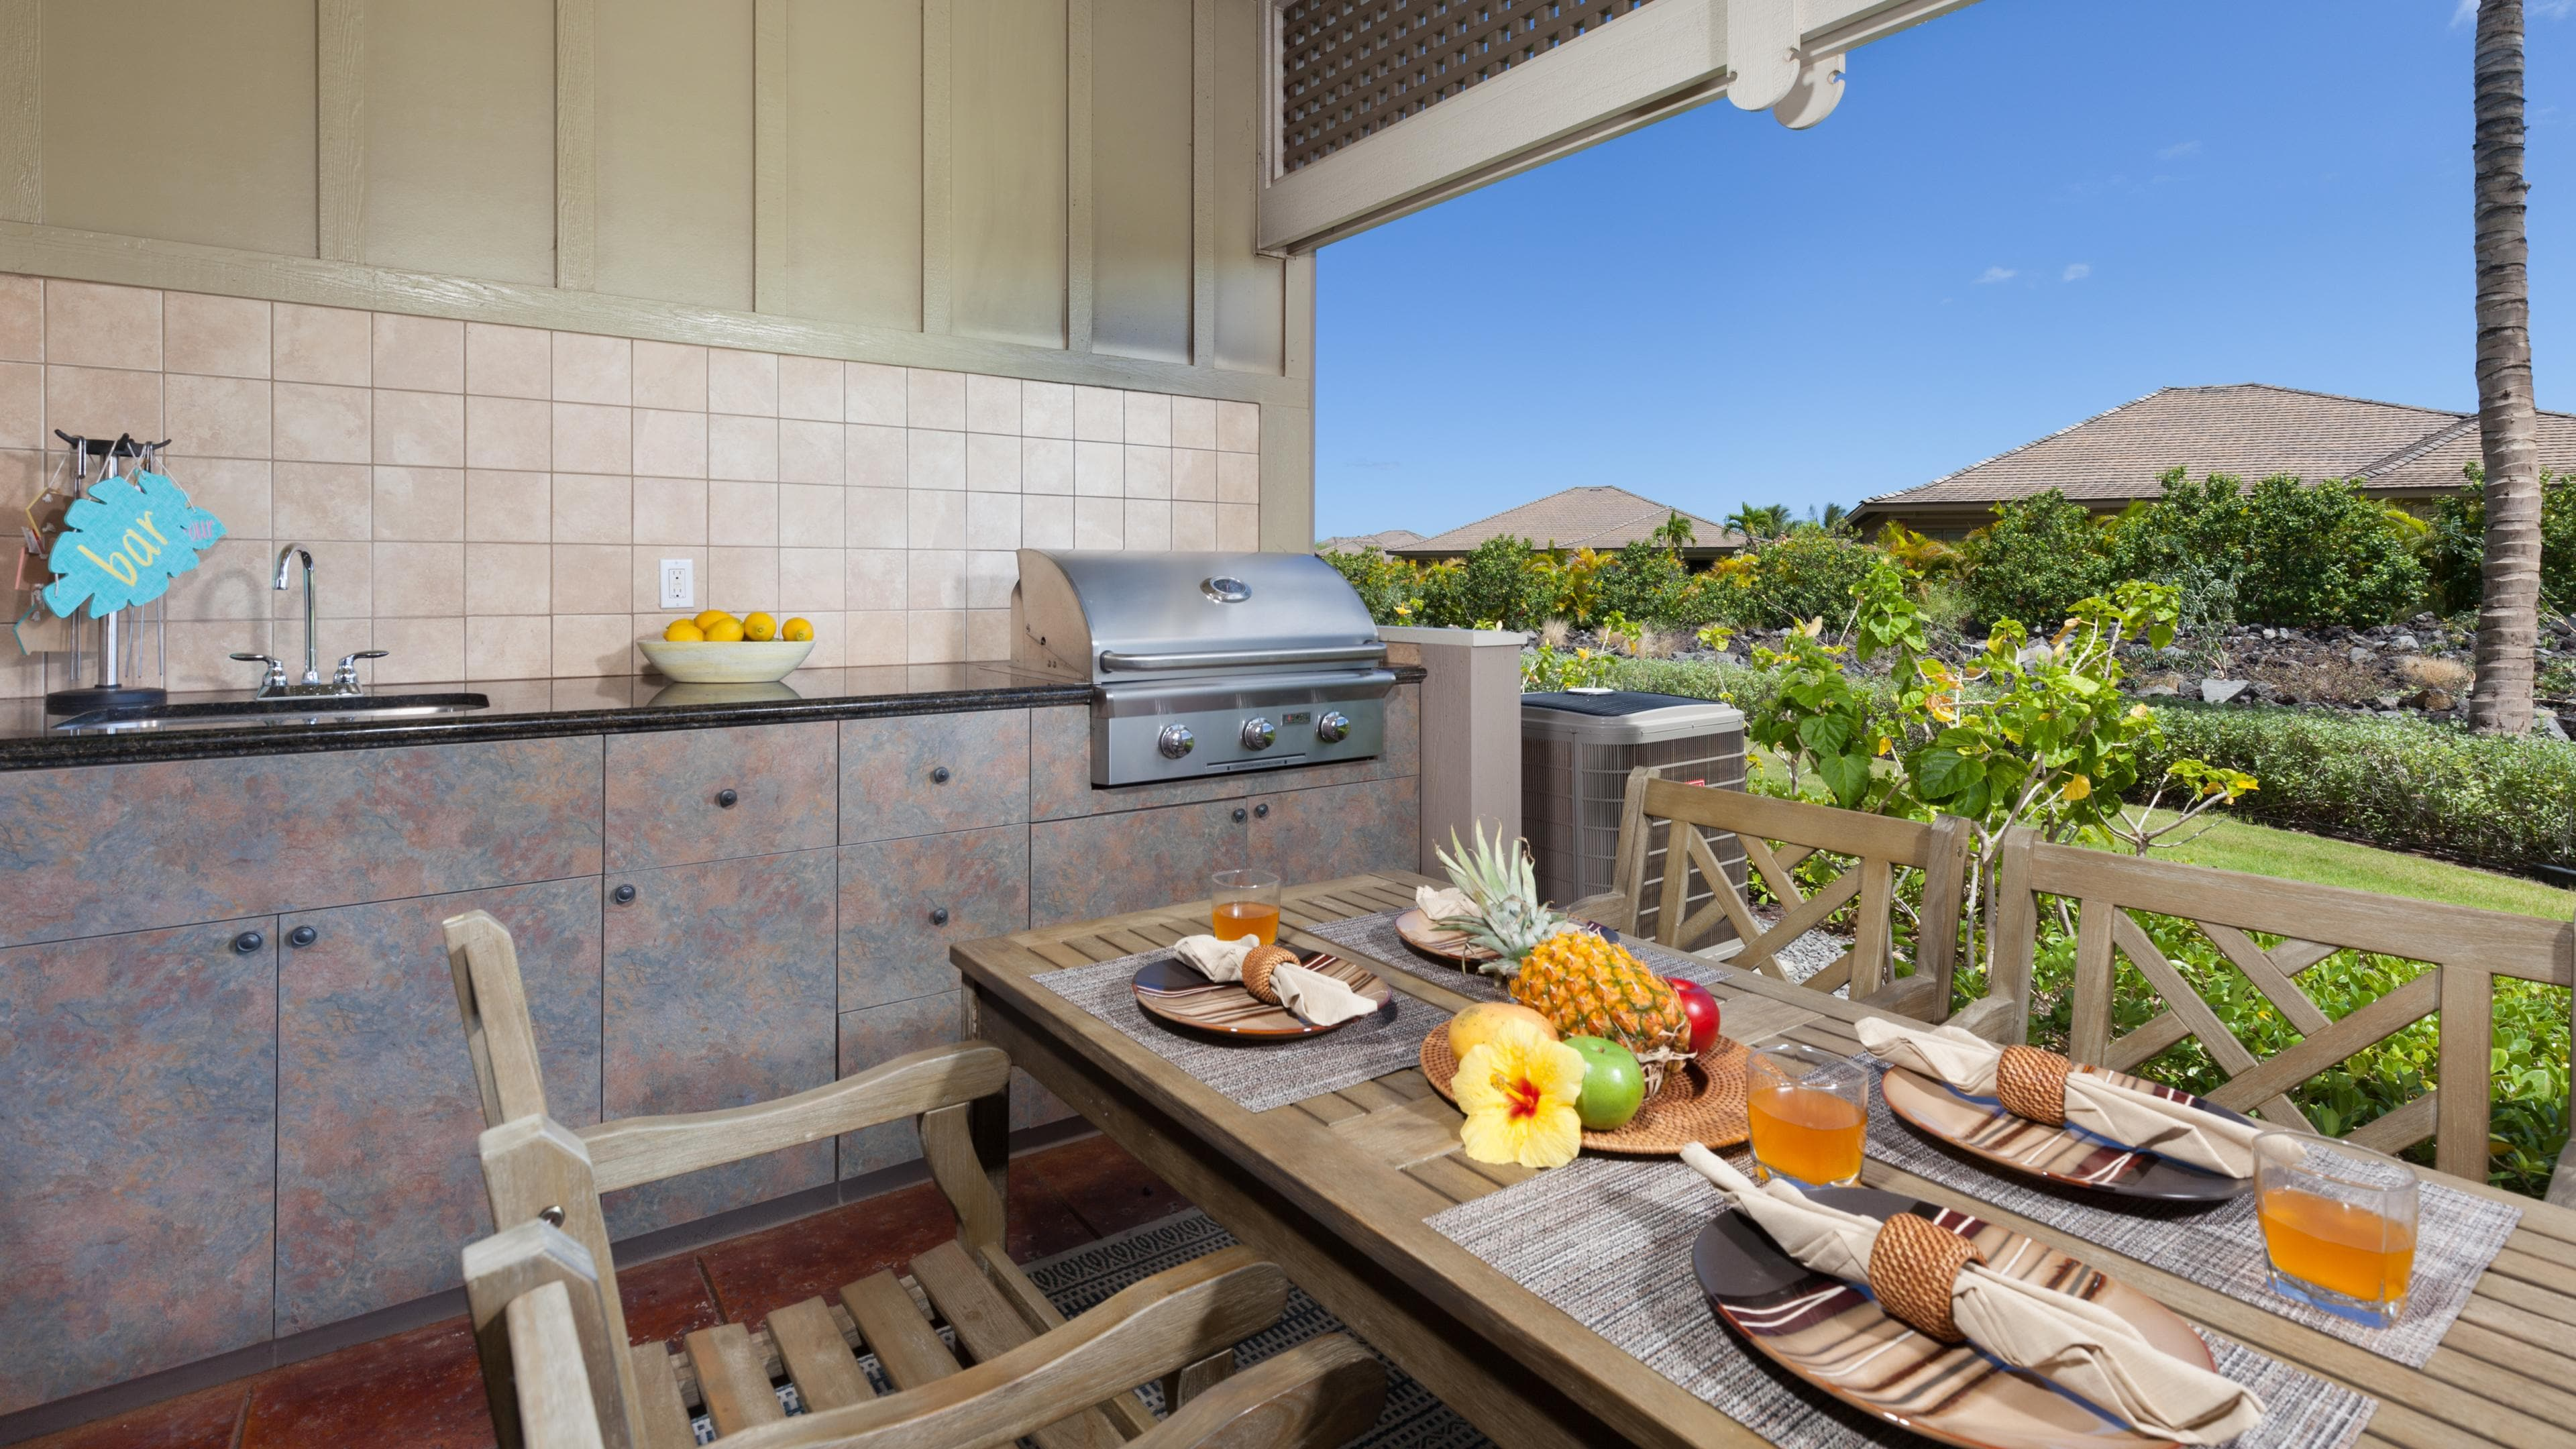 Private outdoor kitchen and grill